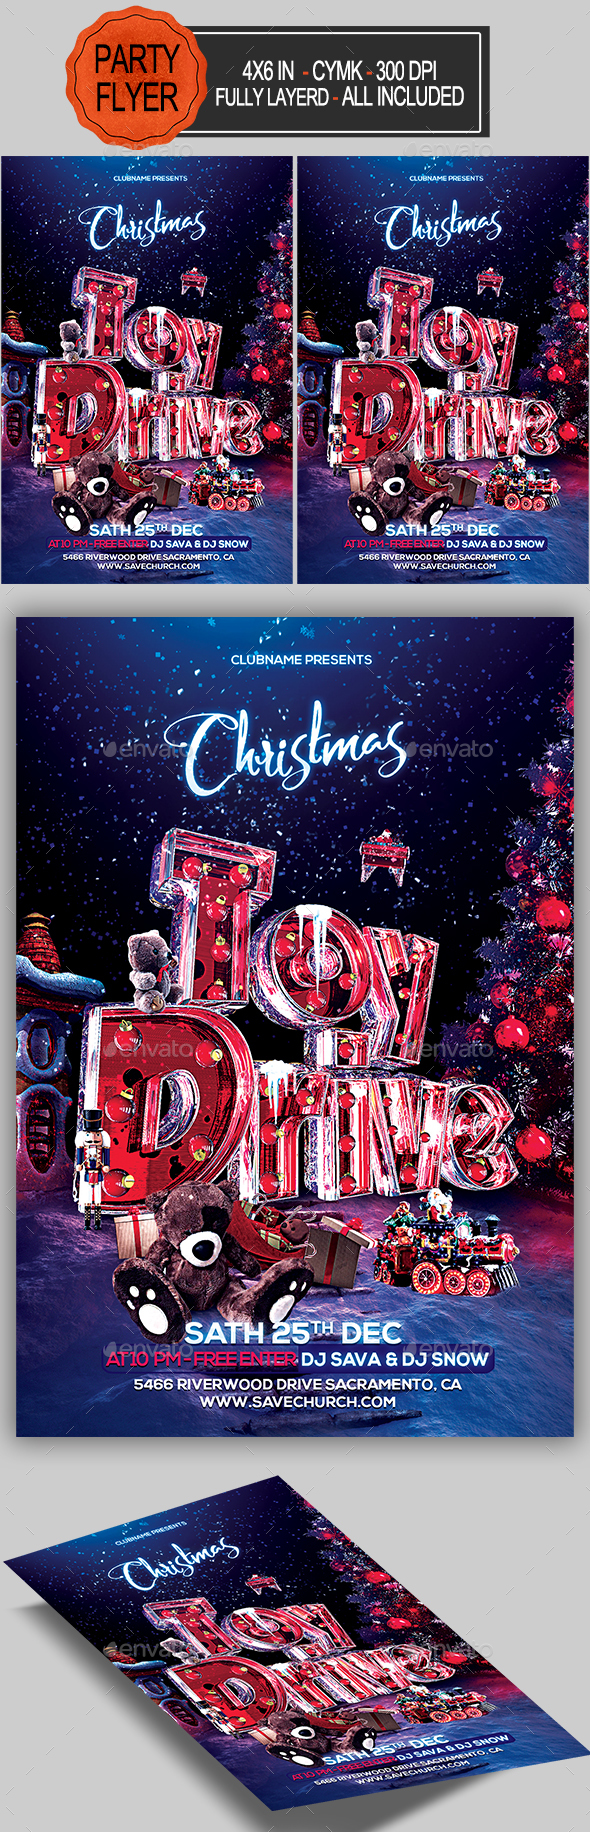 GraphicRiver Toy Drive Flyer 20899503